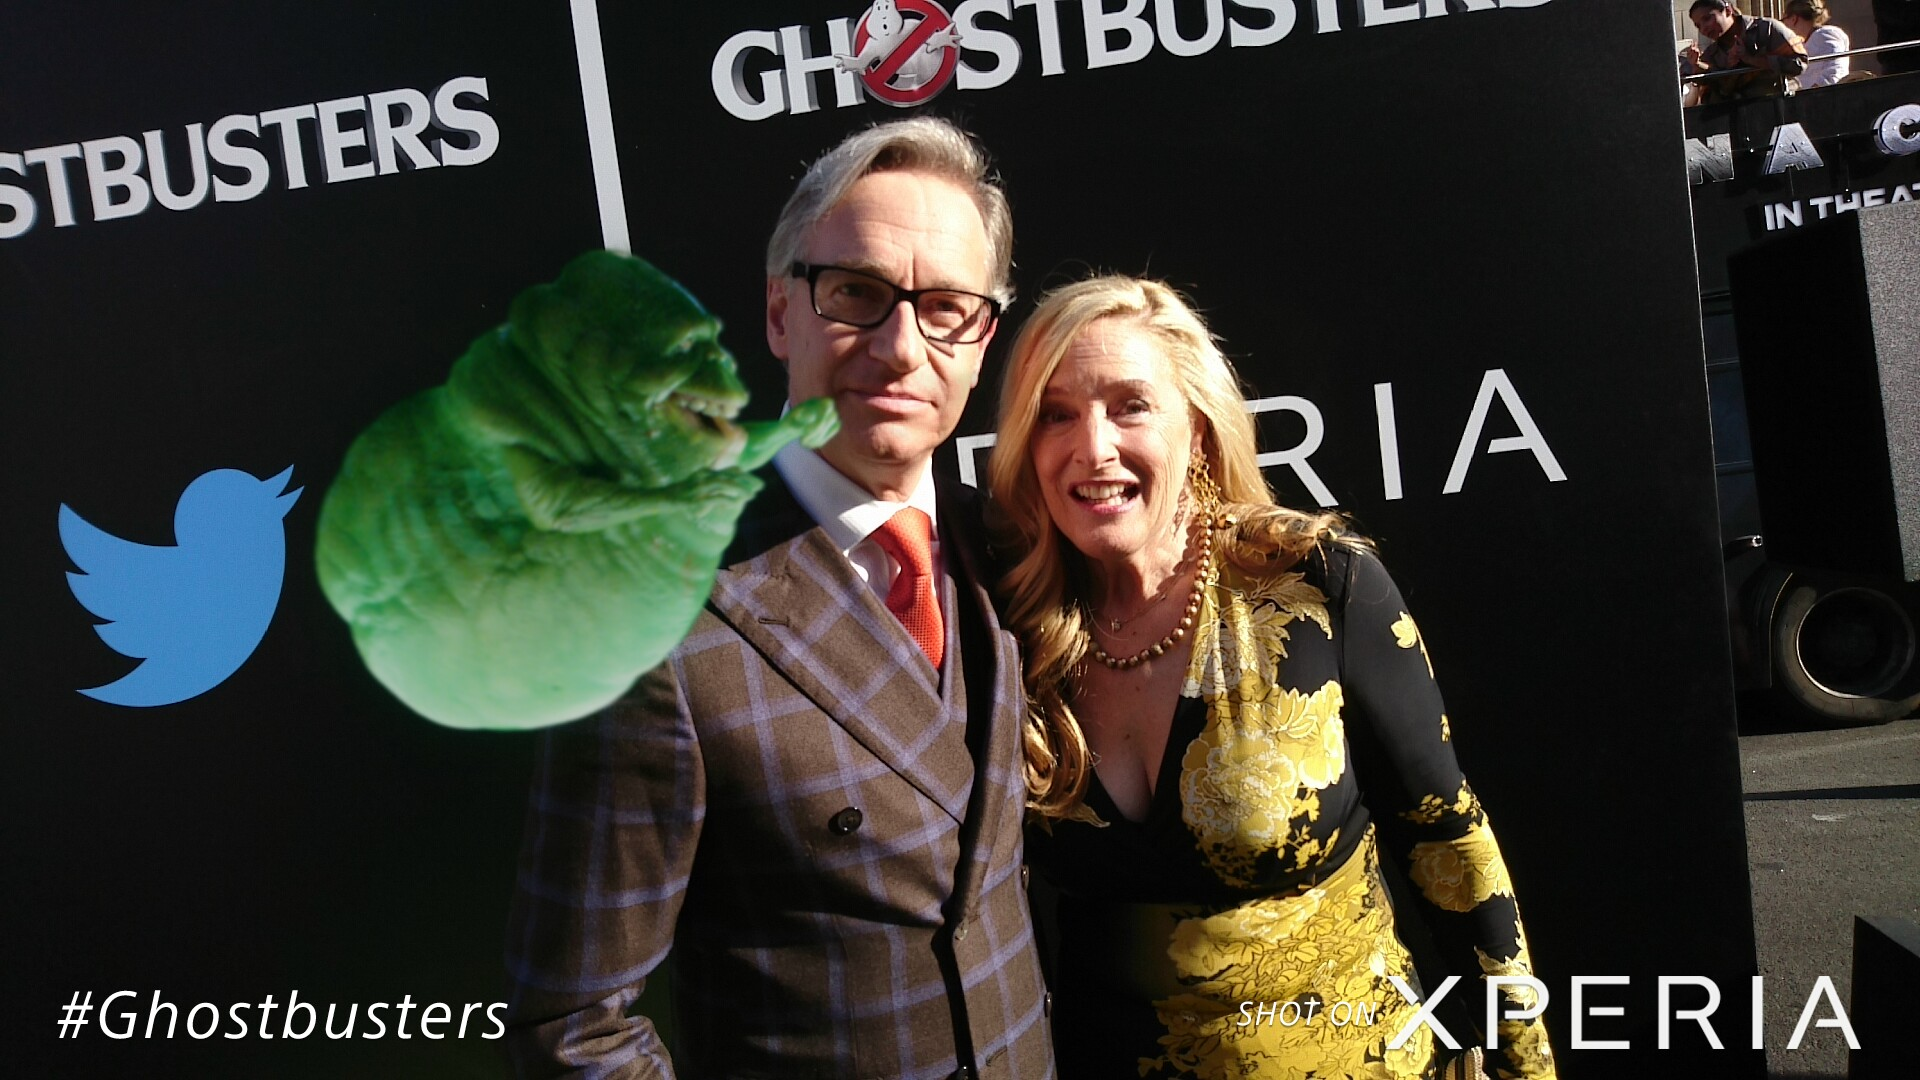 Ghostbusters_Red_Carpet_2016_07_09_17_52_32.912.jpg